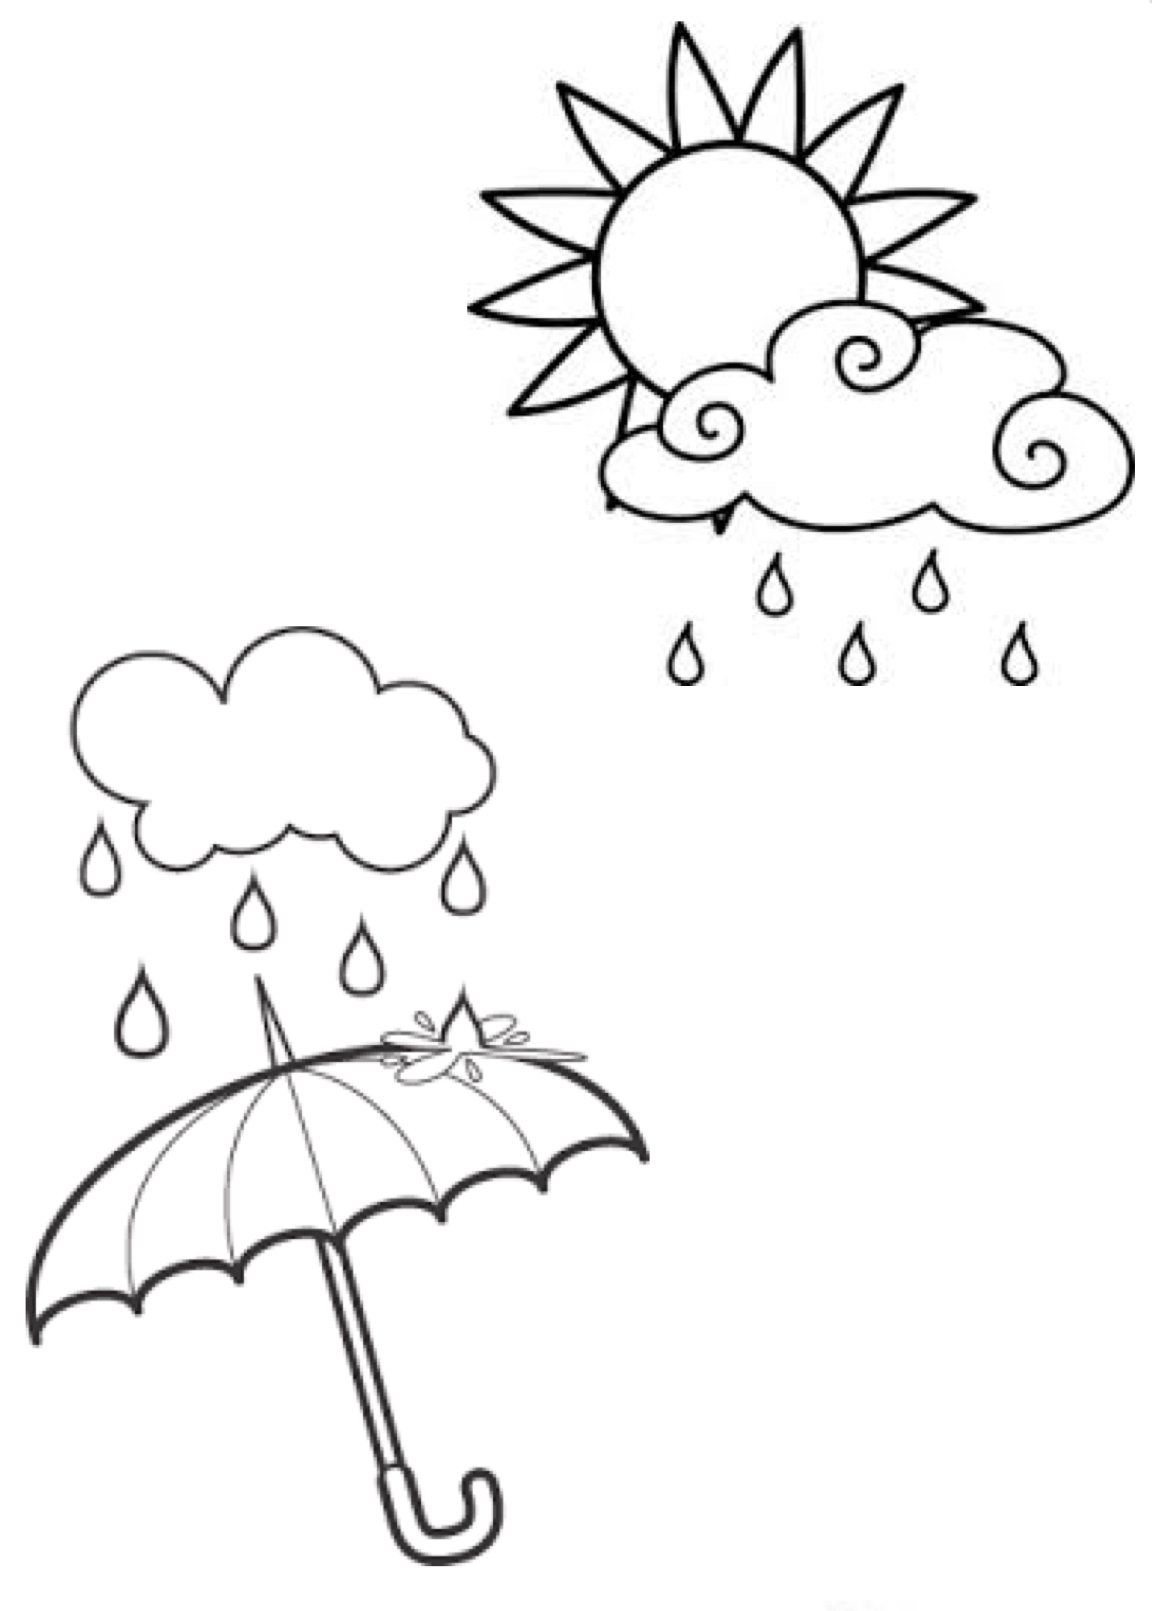 Umbrella Clipart, Coloring Pages And More Free Printable.